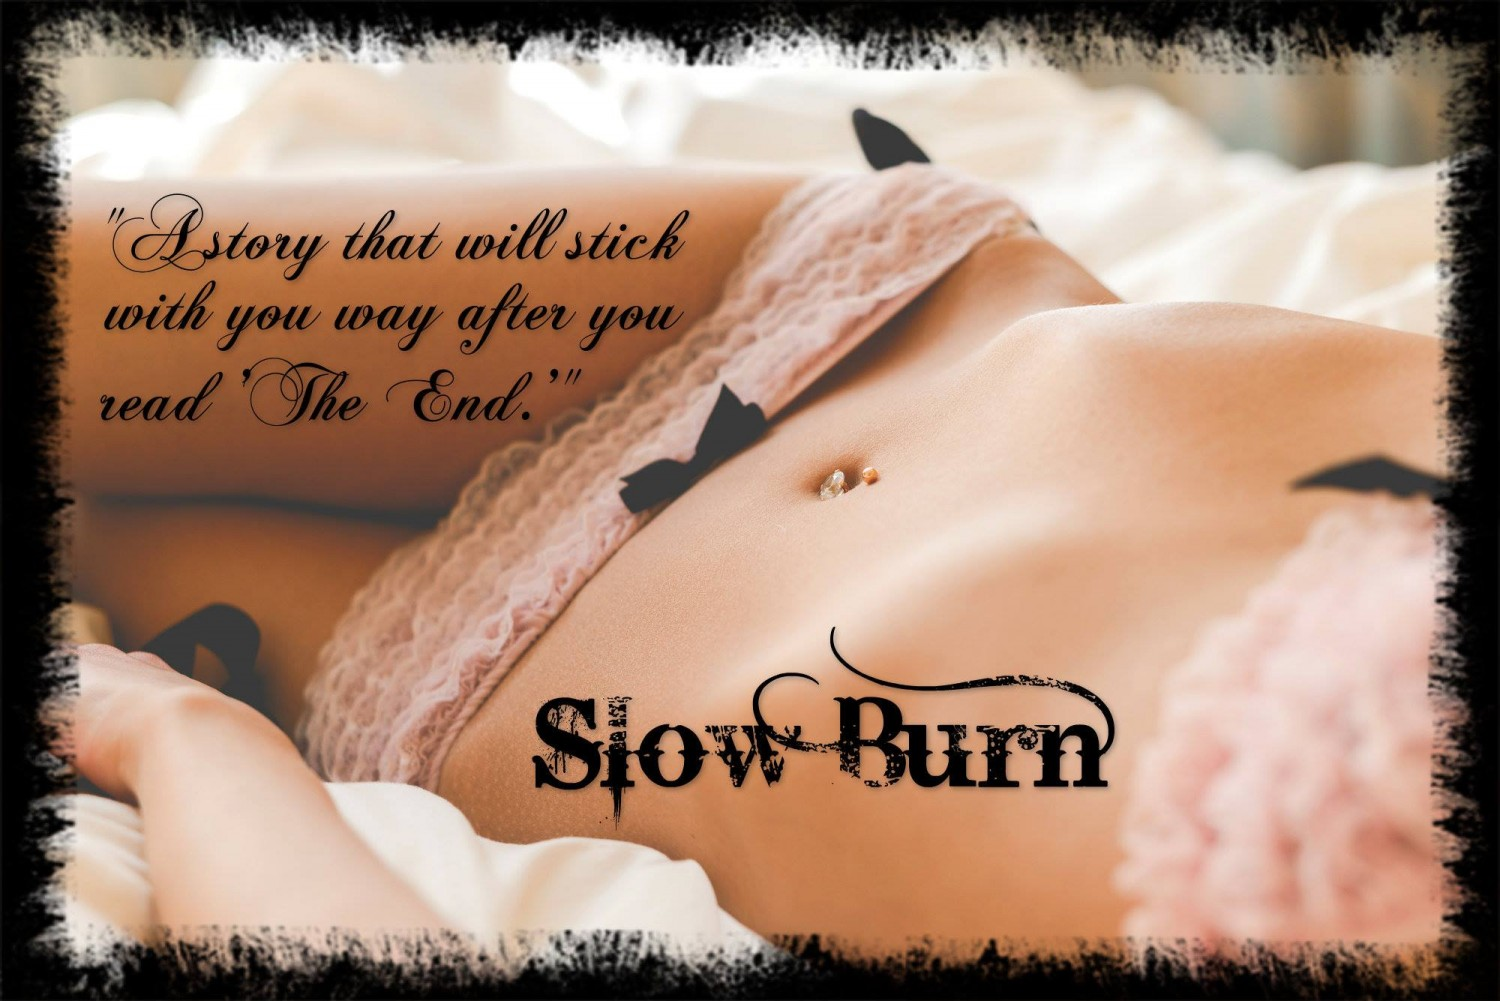 slow burn teaser 3